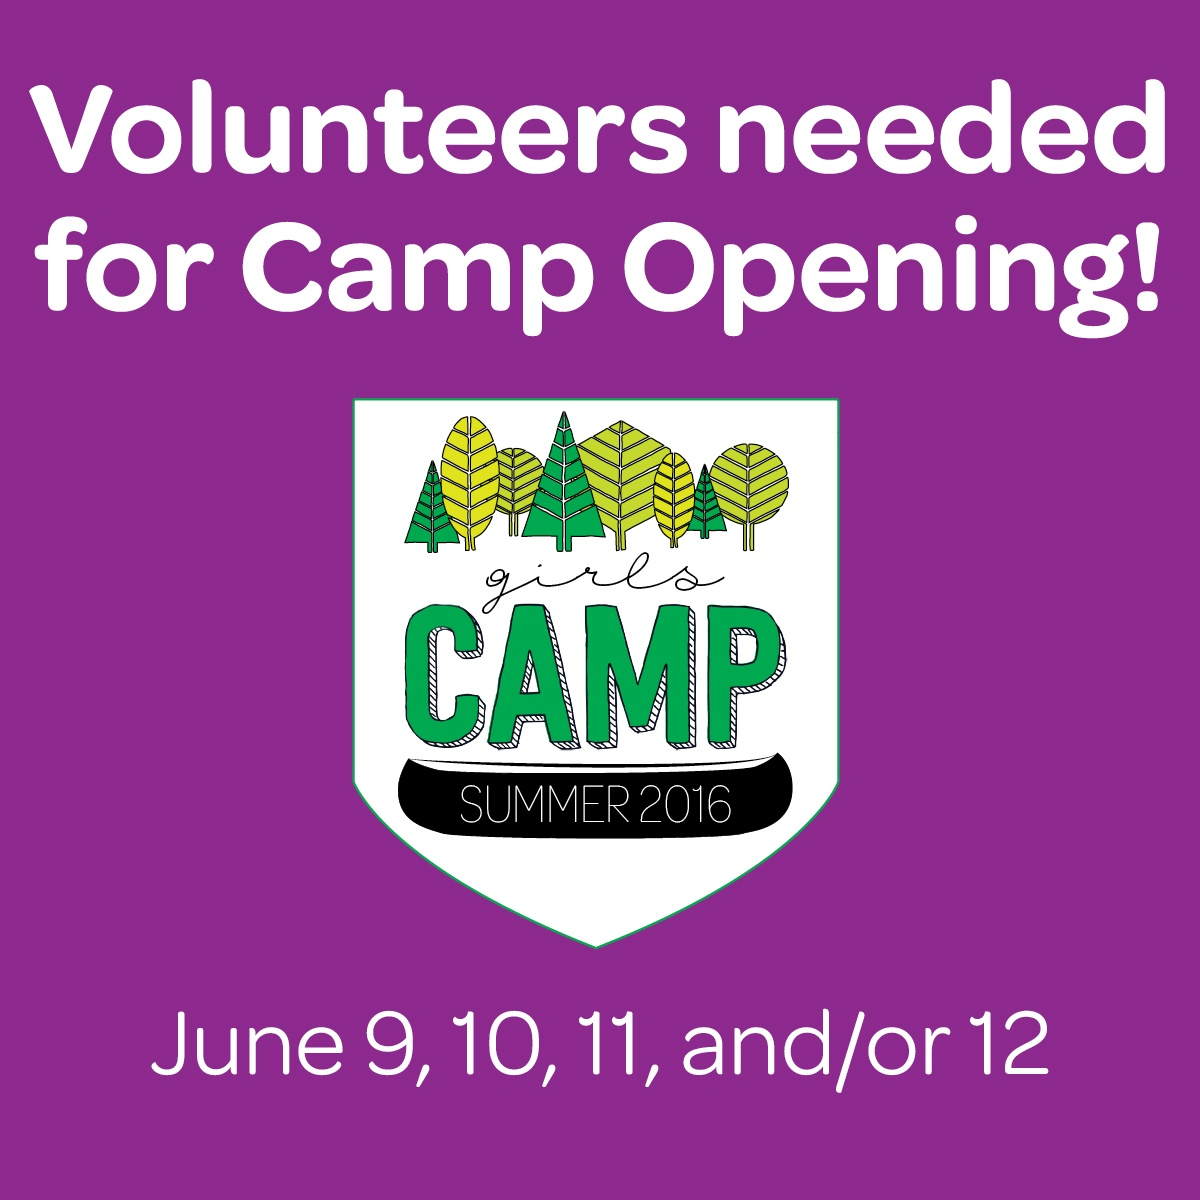 Camp Open